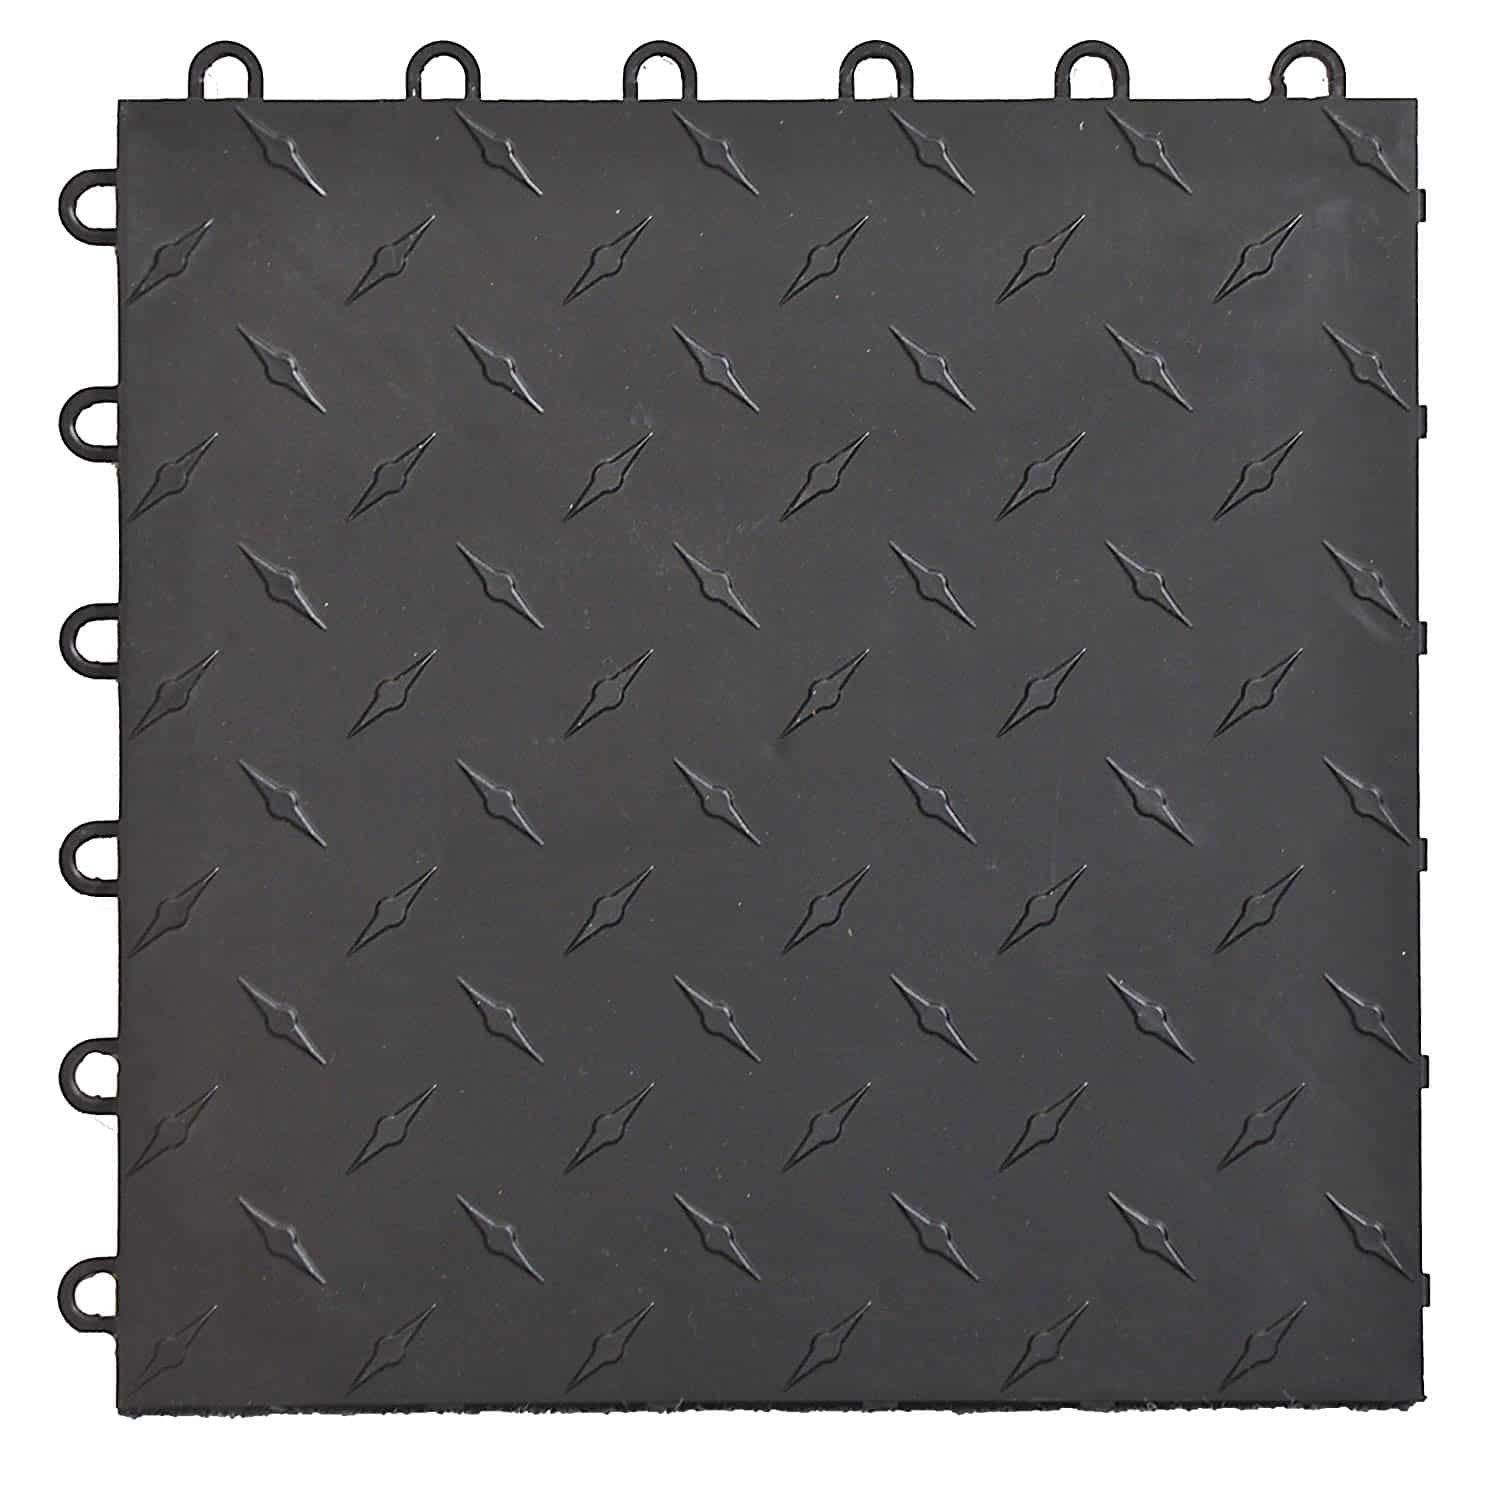 Speedway 789453B-50 Diamond Garage Floor 6 LOCK Diamond Tile